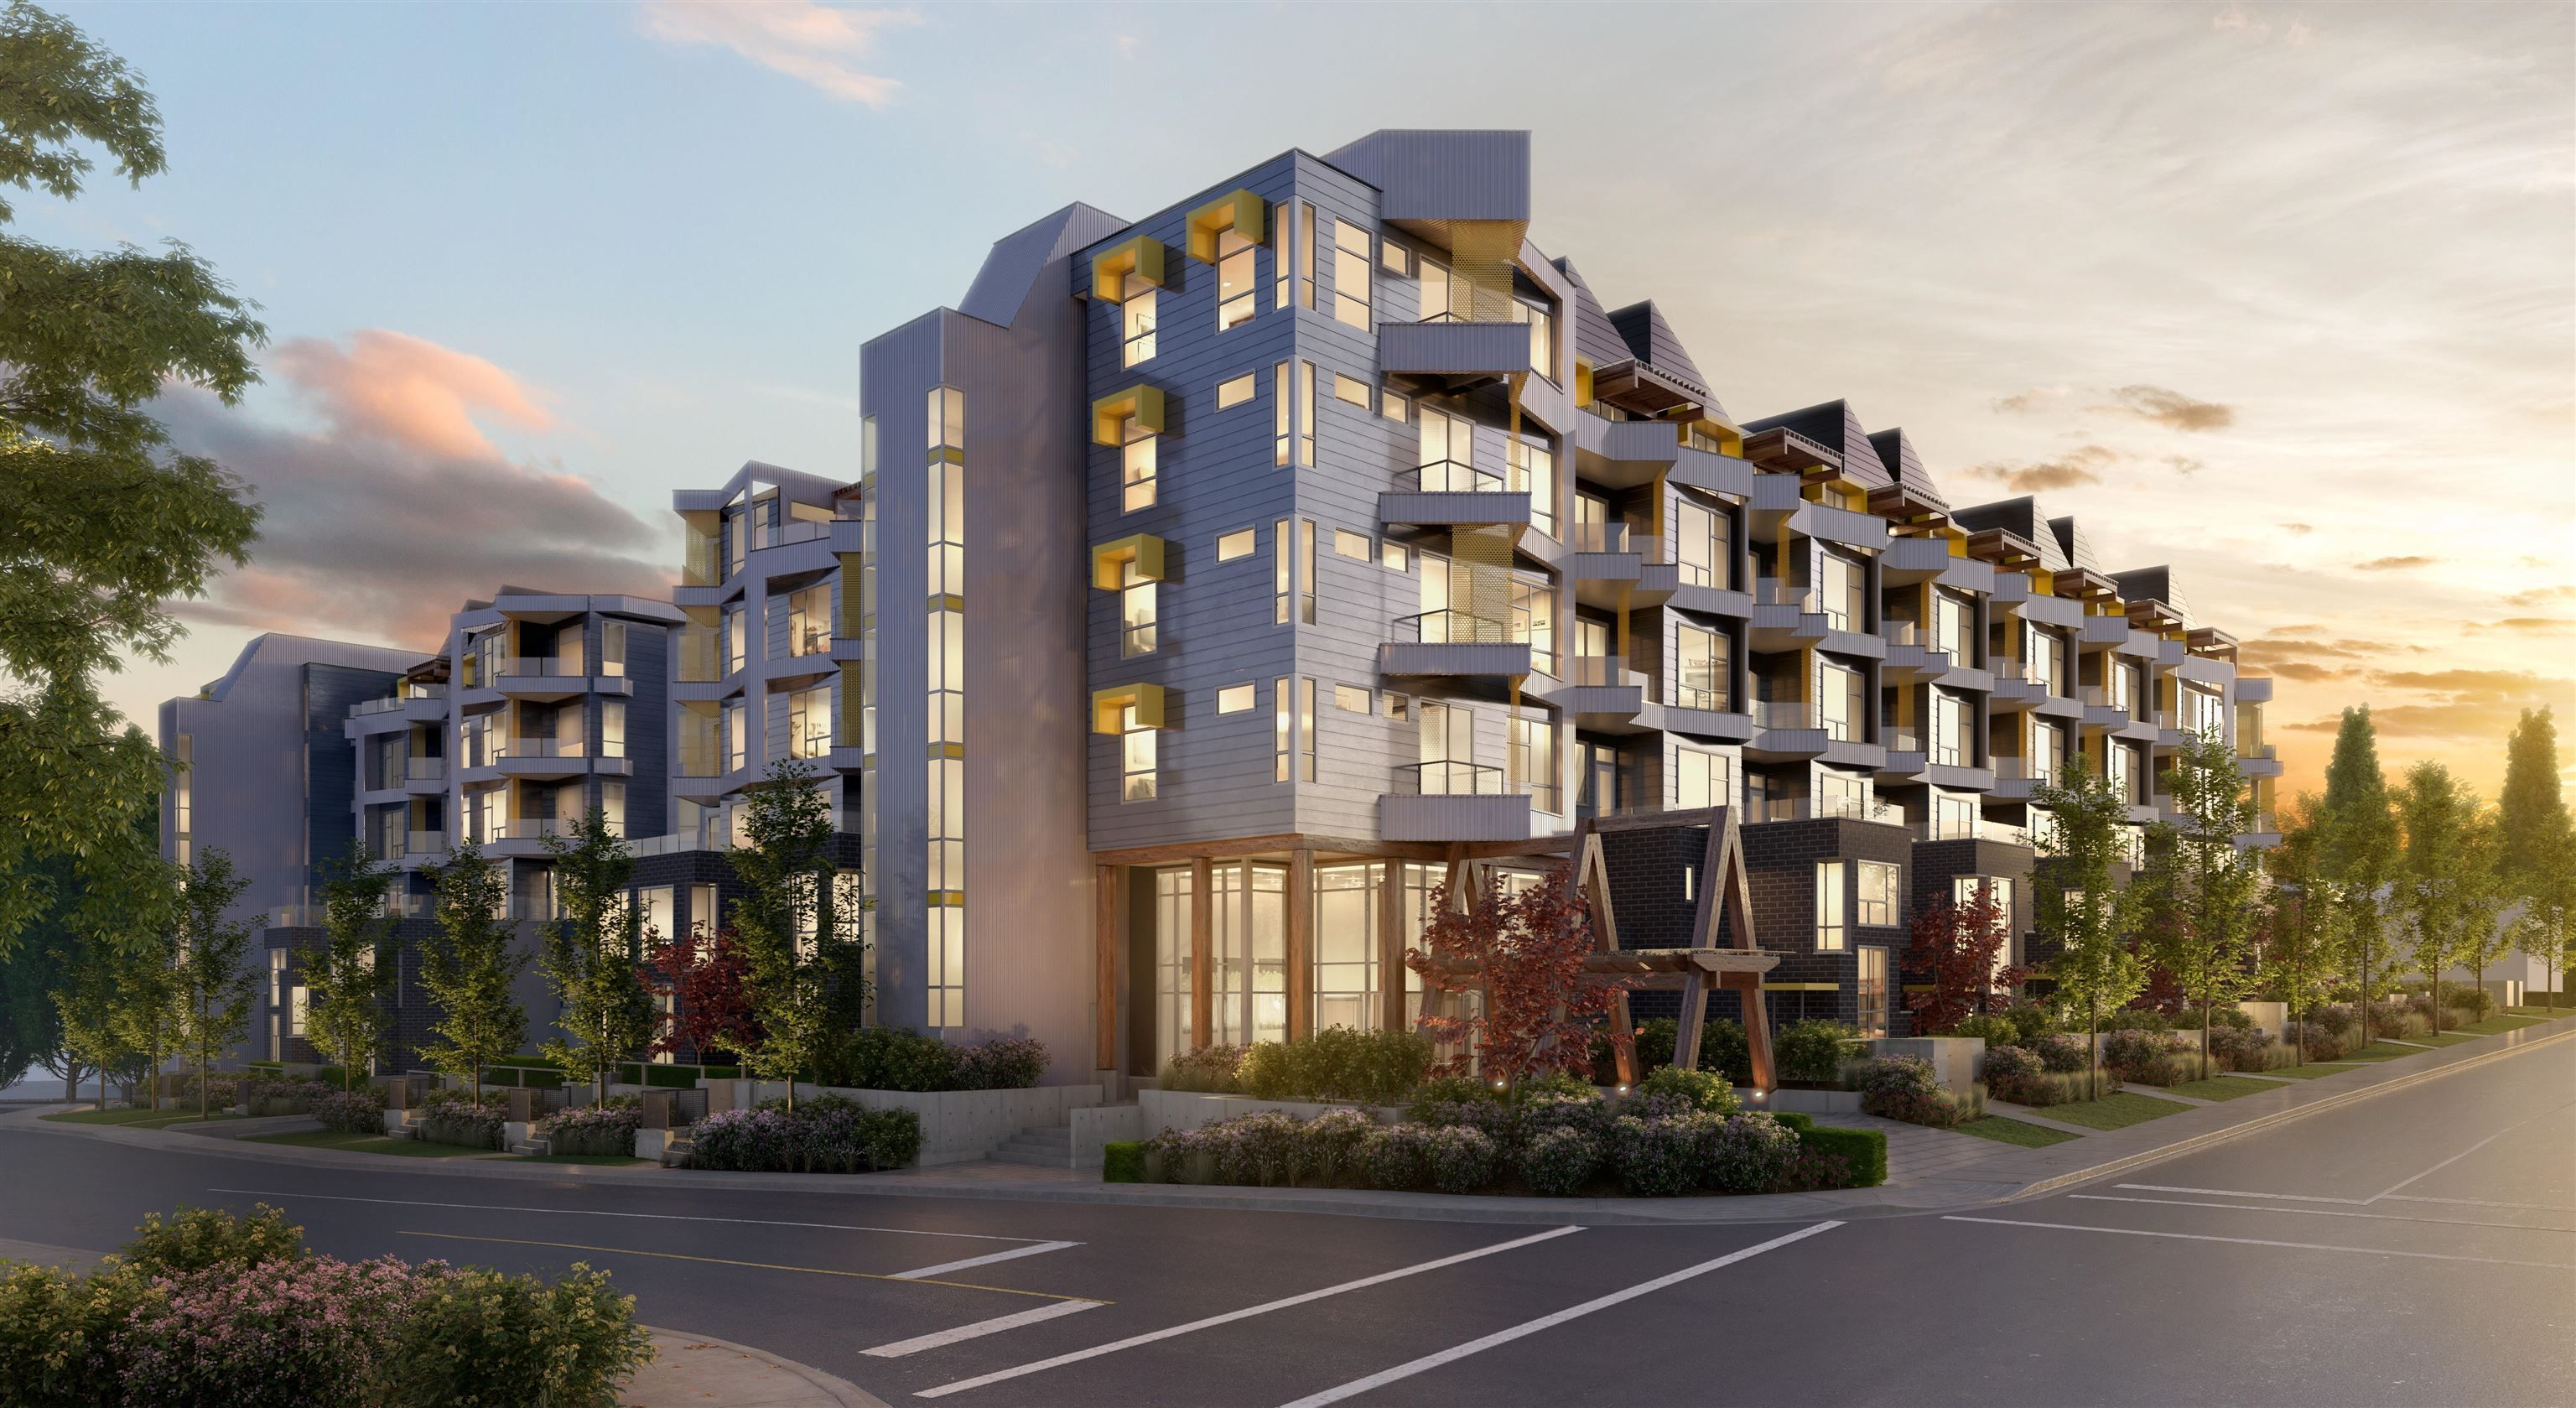 """Main Photo: 605 32838 LANDEAU Place in Abbotsford: Central Abbotsford Condo for sale in """"Court"""" : MLS®# R2625386"""